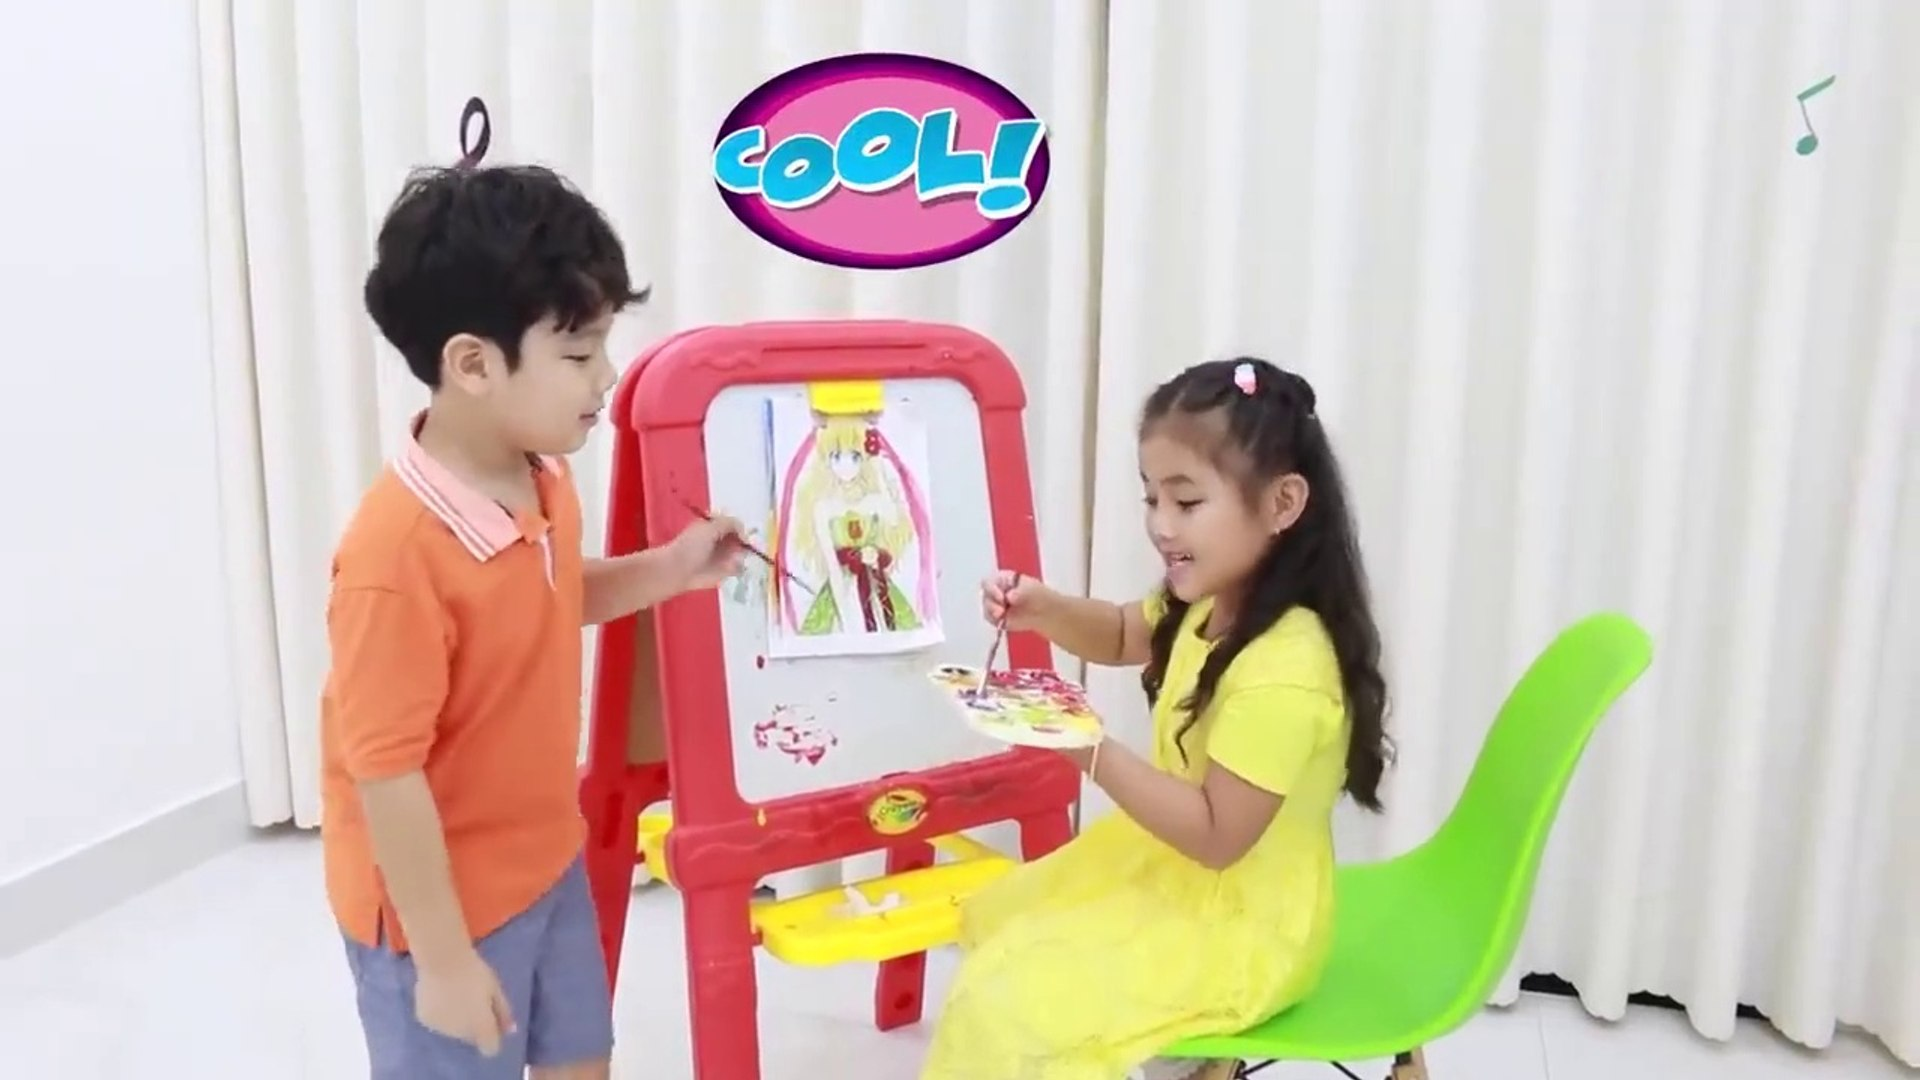 Annie and Sammy Pretend Play with Fun Colored Paint Kids Toys  - Kids Play - Kids